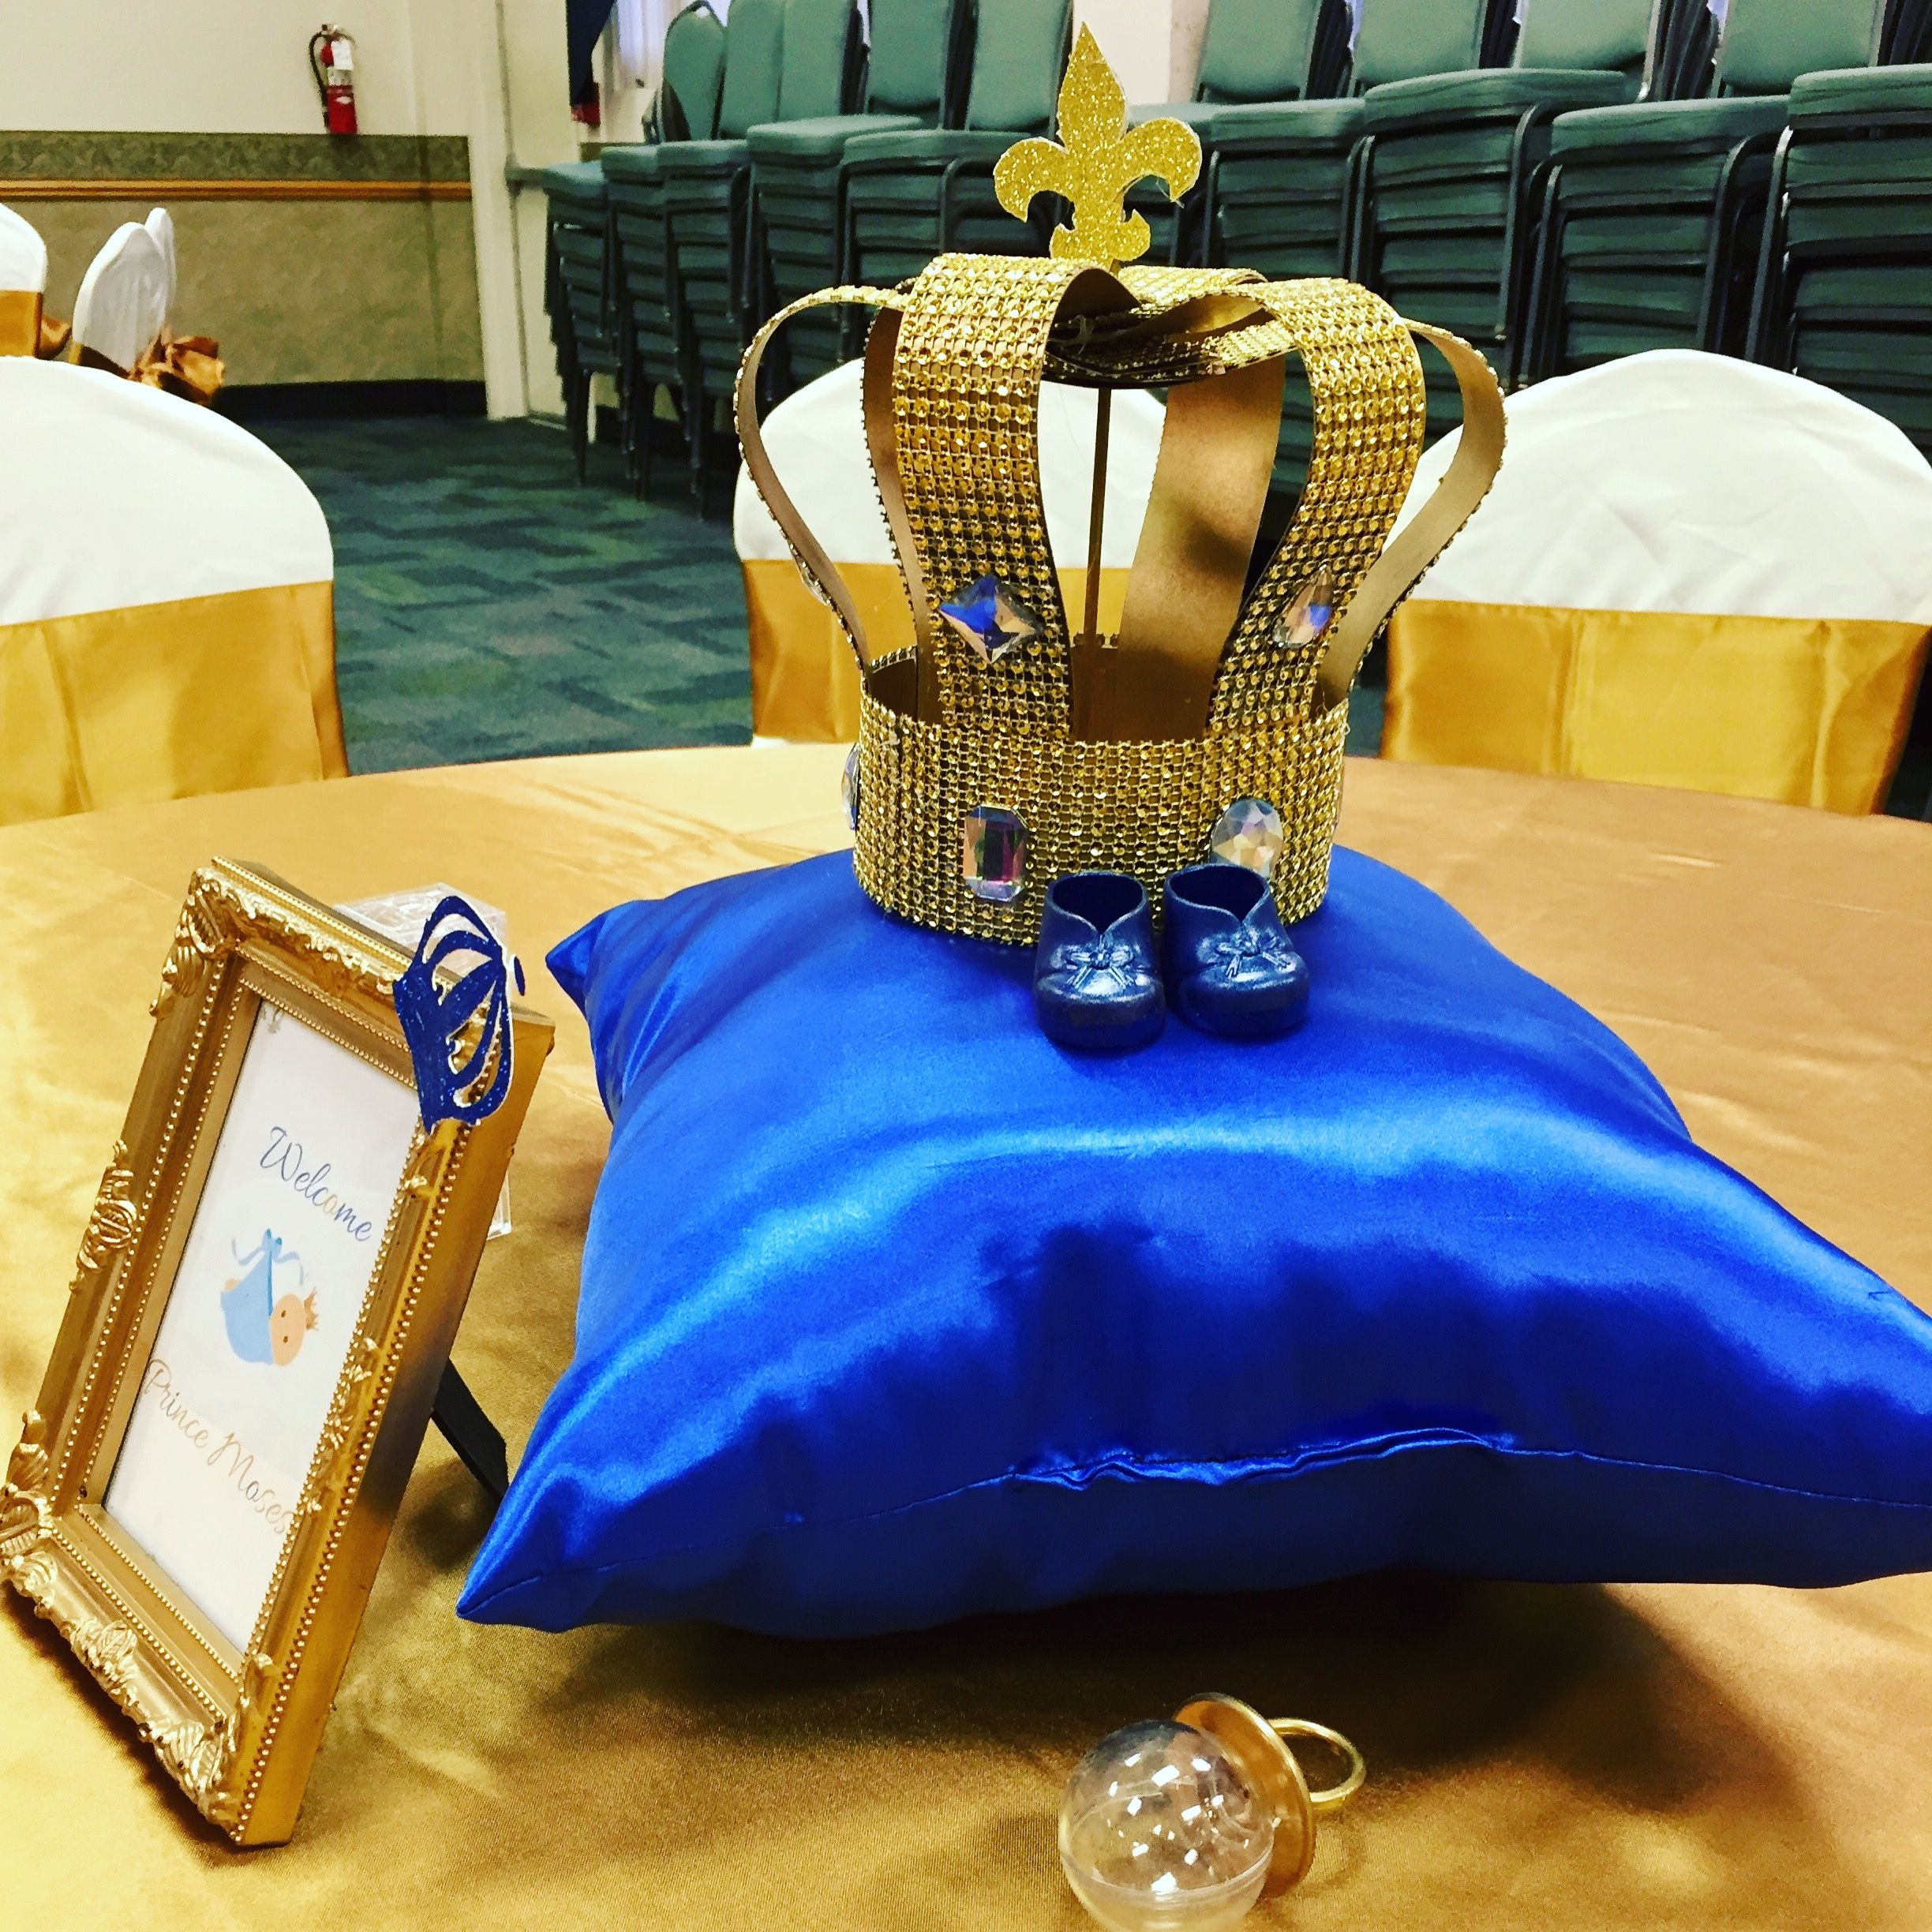 Royal Prince Baby Shower Centerpieces. These Royal Crowns